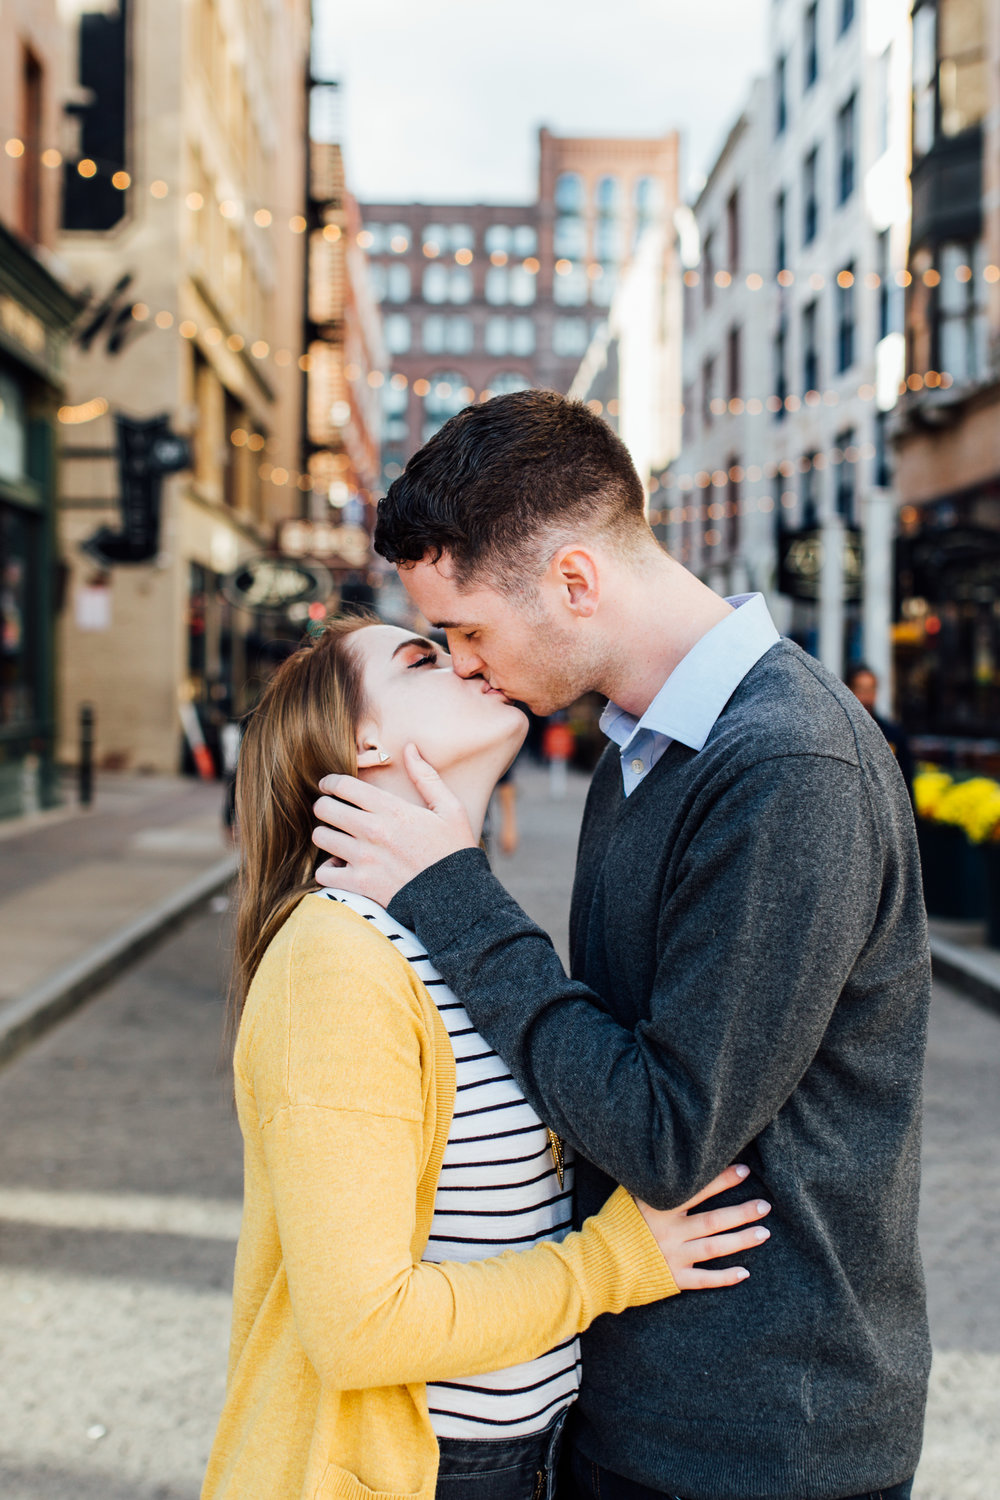 Carrie Hall Phototography || Engagement Photographer Cleveland, Ohio